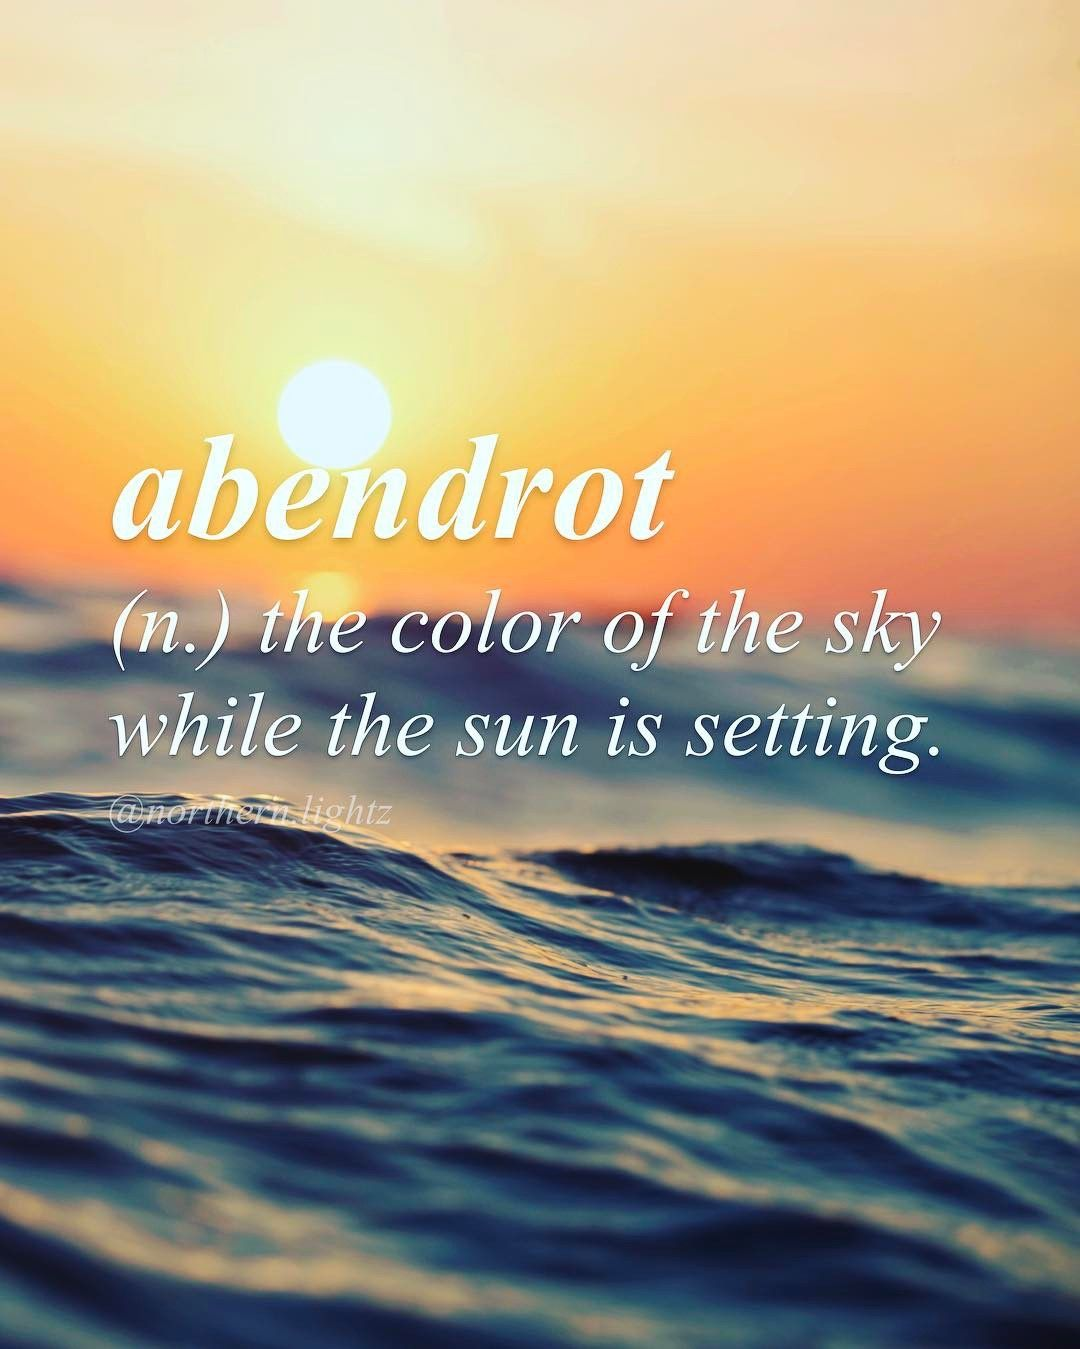 abendrot is the color of the sky at the sunset inspiring quotes